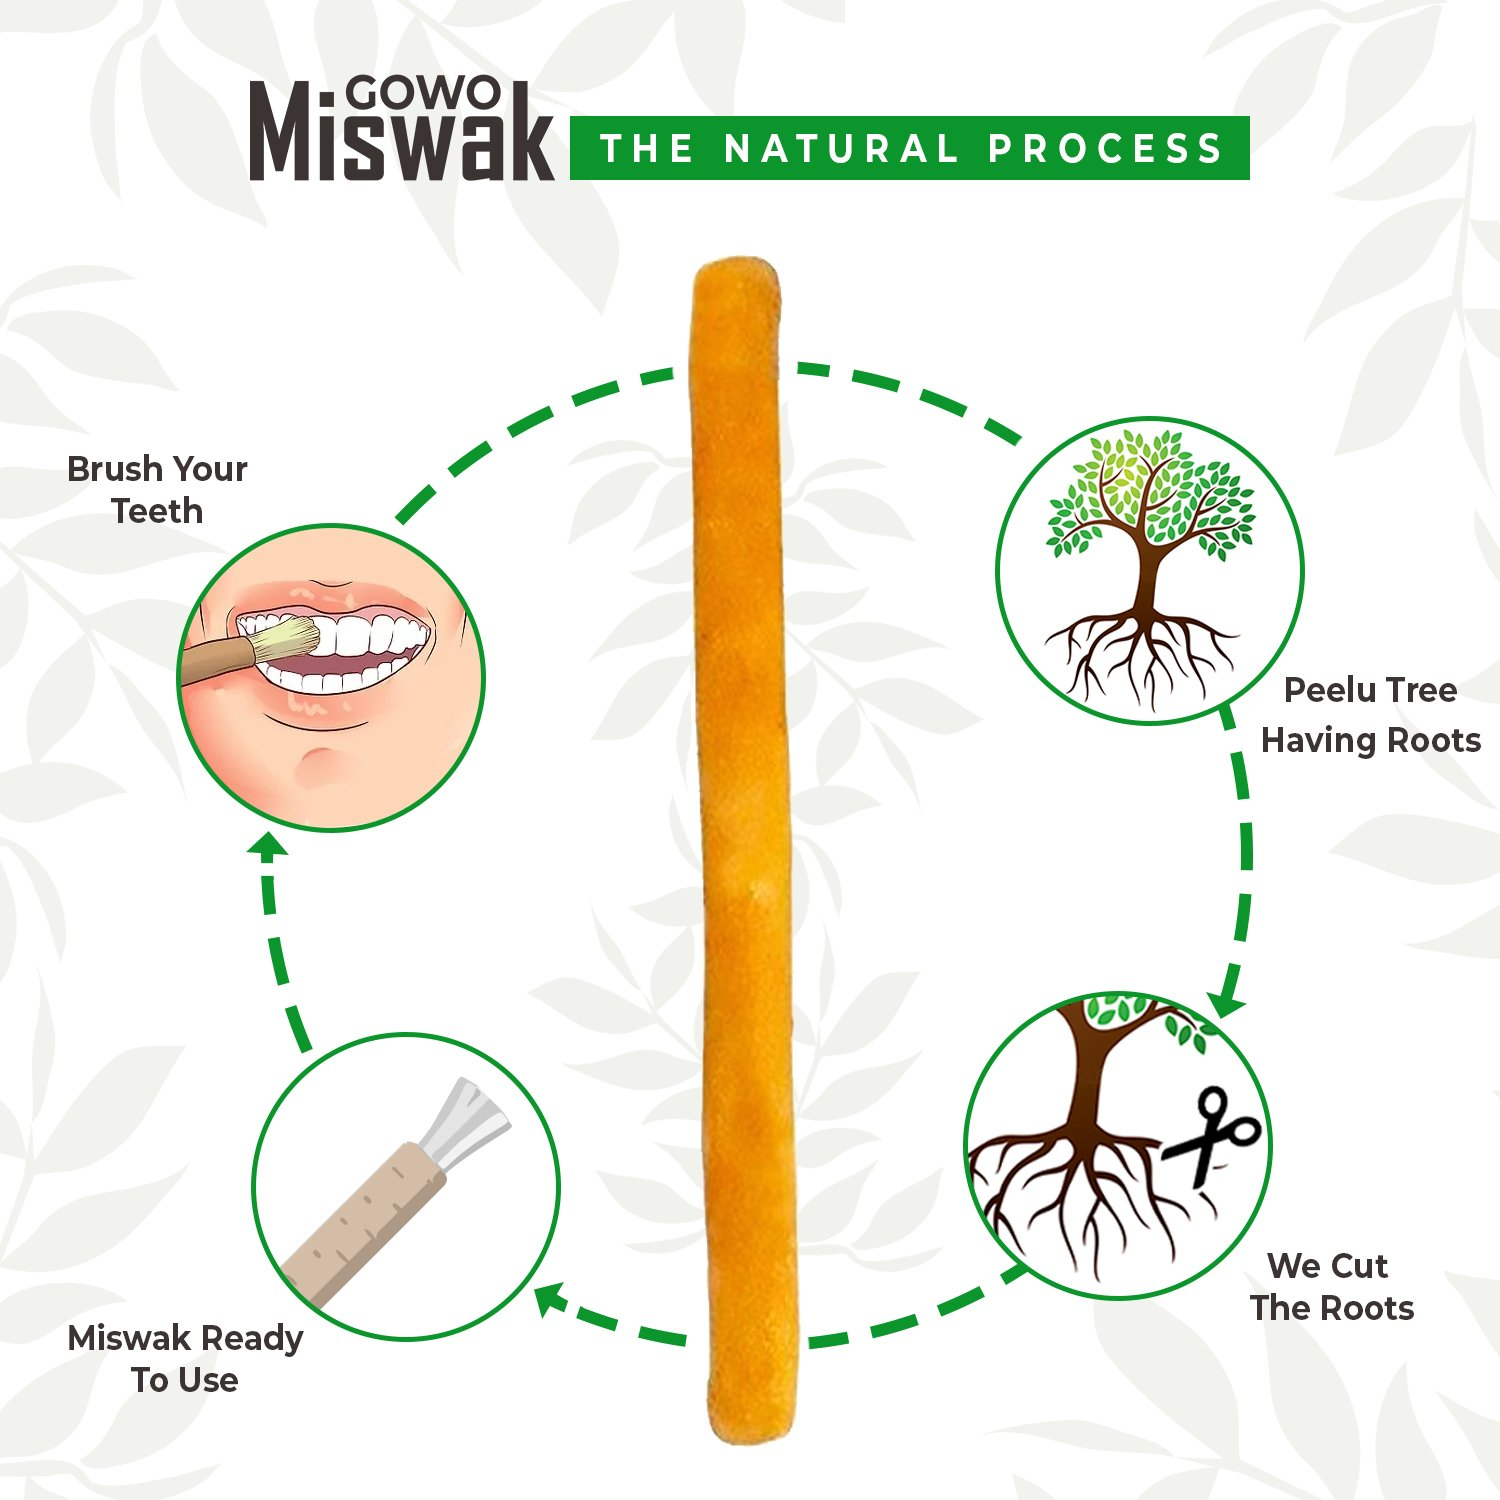 Original GOWO Miswak Sticks (3 Pack) 100% Natural Teeth Whitening Kit Natural Toothbrush Chemical Free Teeth Whitener and Breath Freshener Best Travel Gift For Hajj Umrah No Toothpaste Needed by GOWO (Image #3)